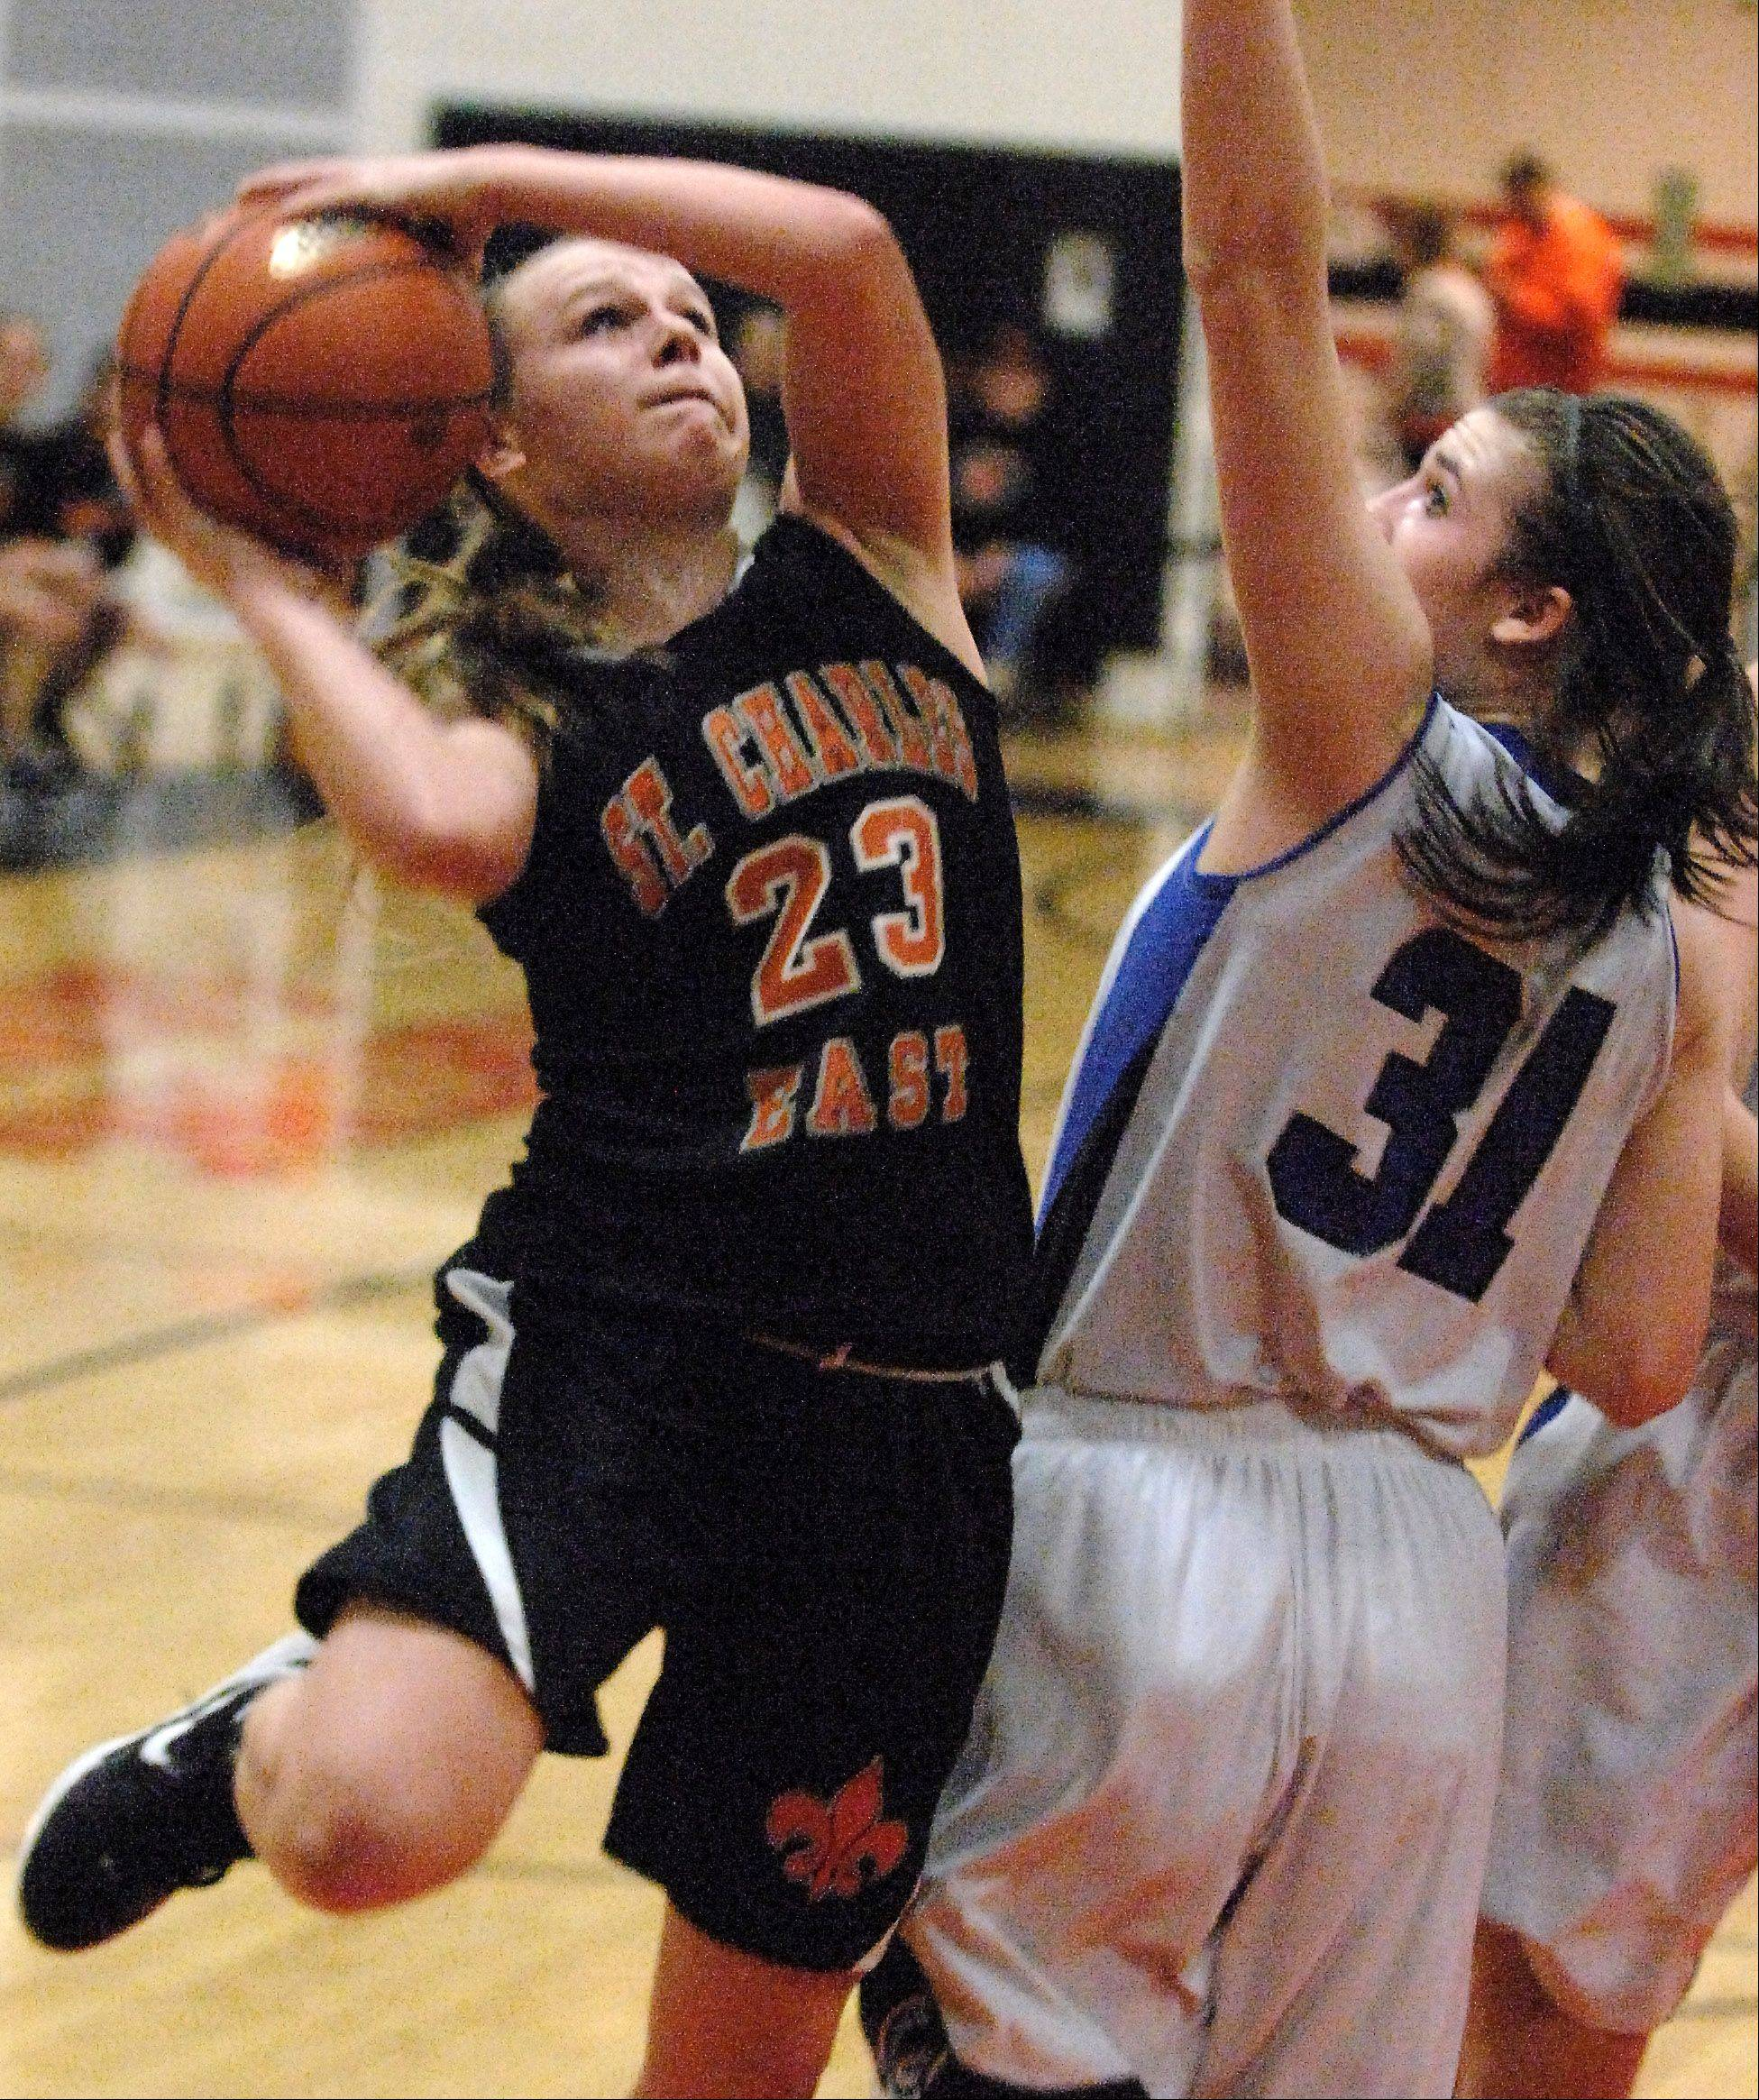 St. Charles East�s Amanda Hilton puts up a shot over Geneva�s Sami Pawlak during Thursday�s regional championship game in St. Charles.